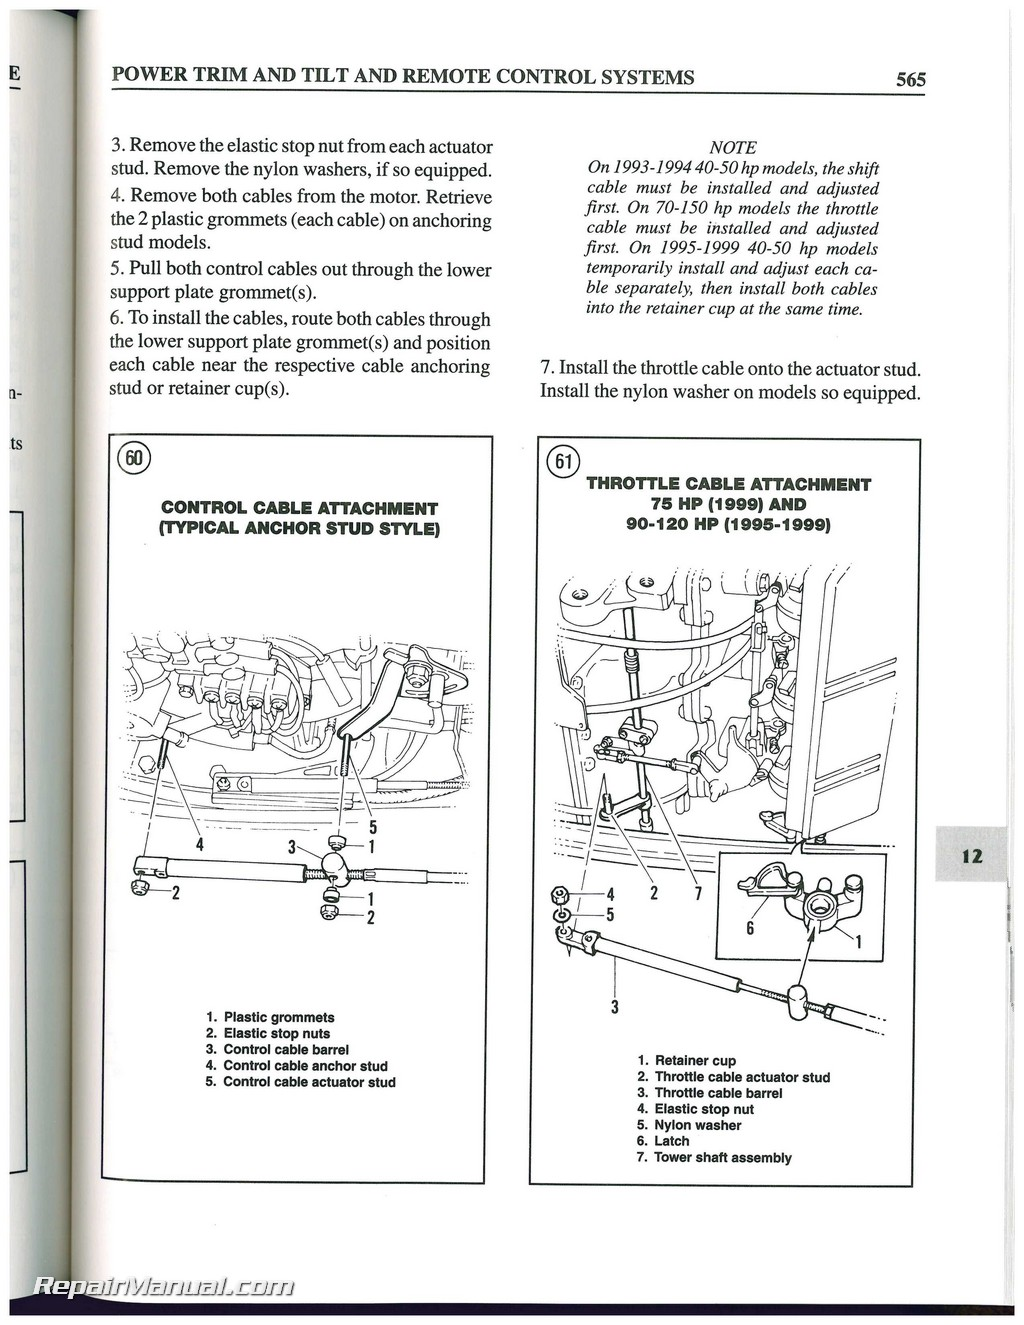 1984 johnson 70 hp outboard manual